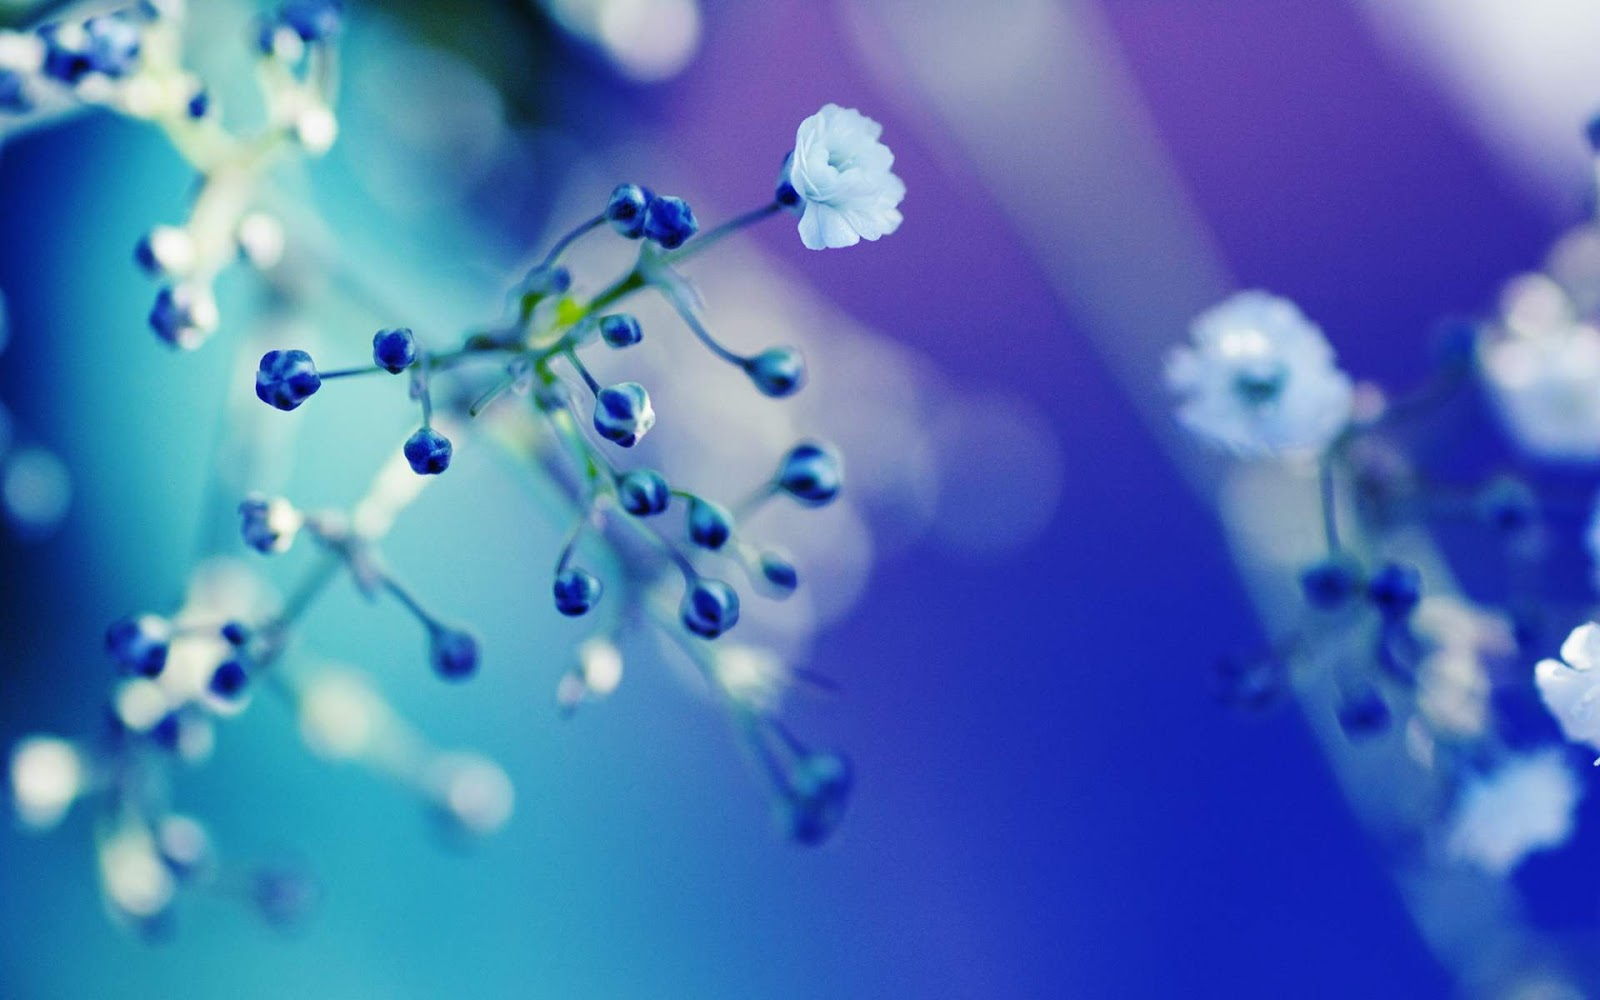 Blue Flowers Close Up Wallpaper Background HD